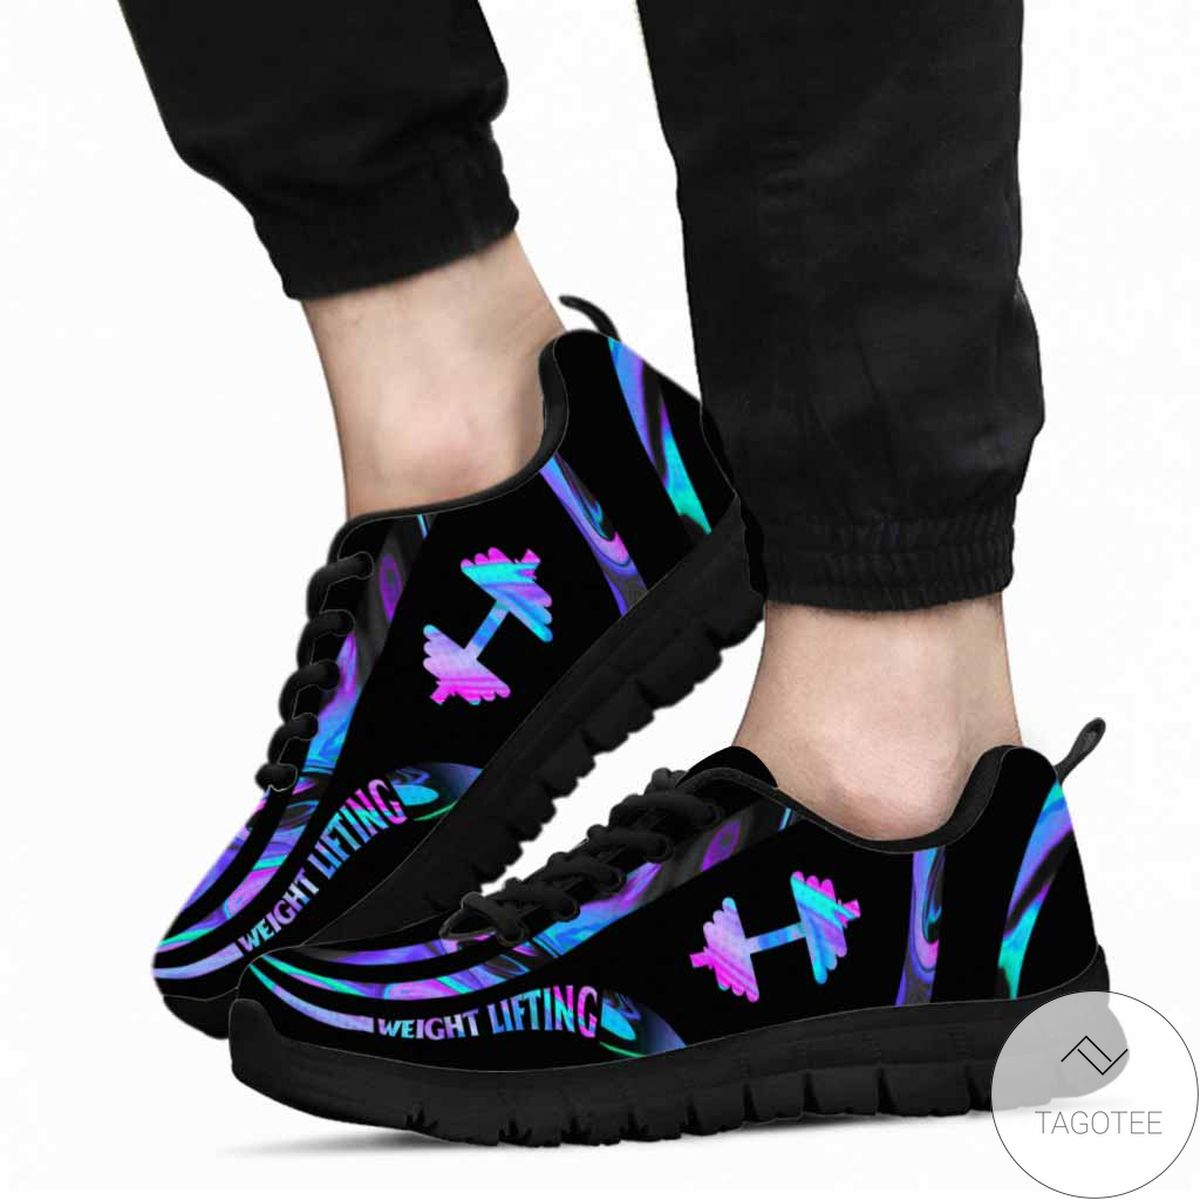 Luxury Weight Lifting Life Sneakers